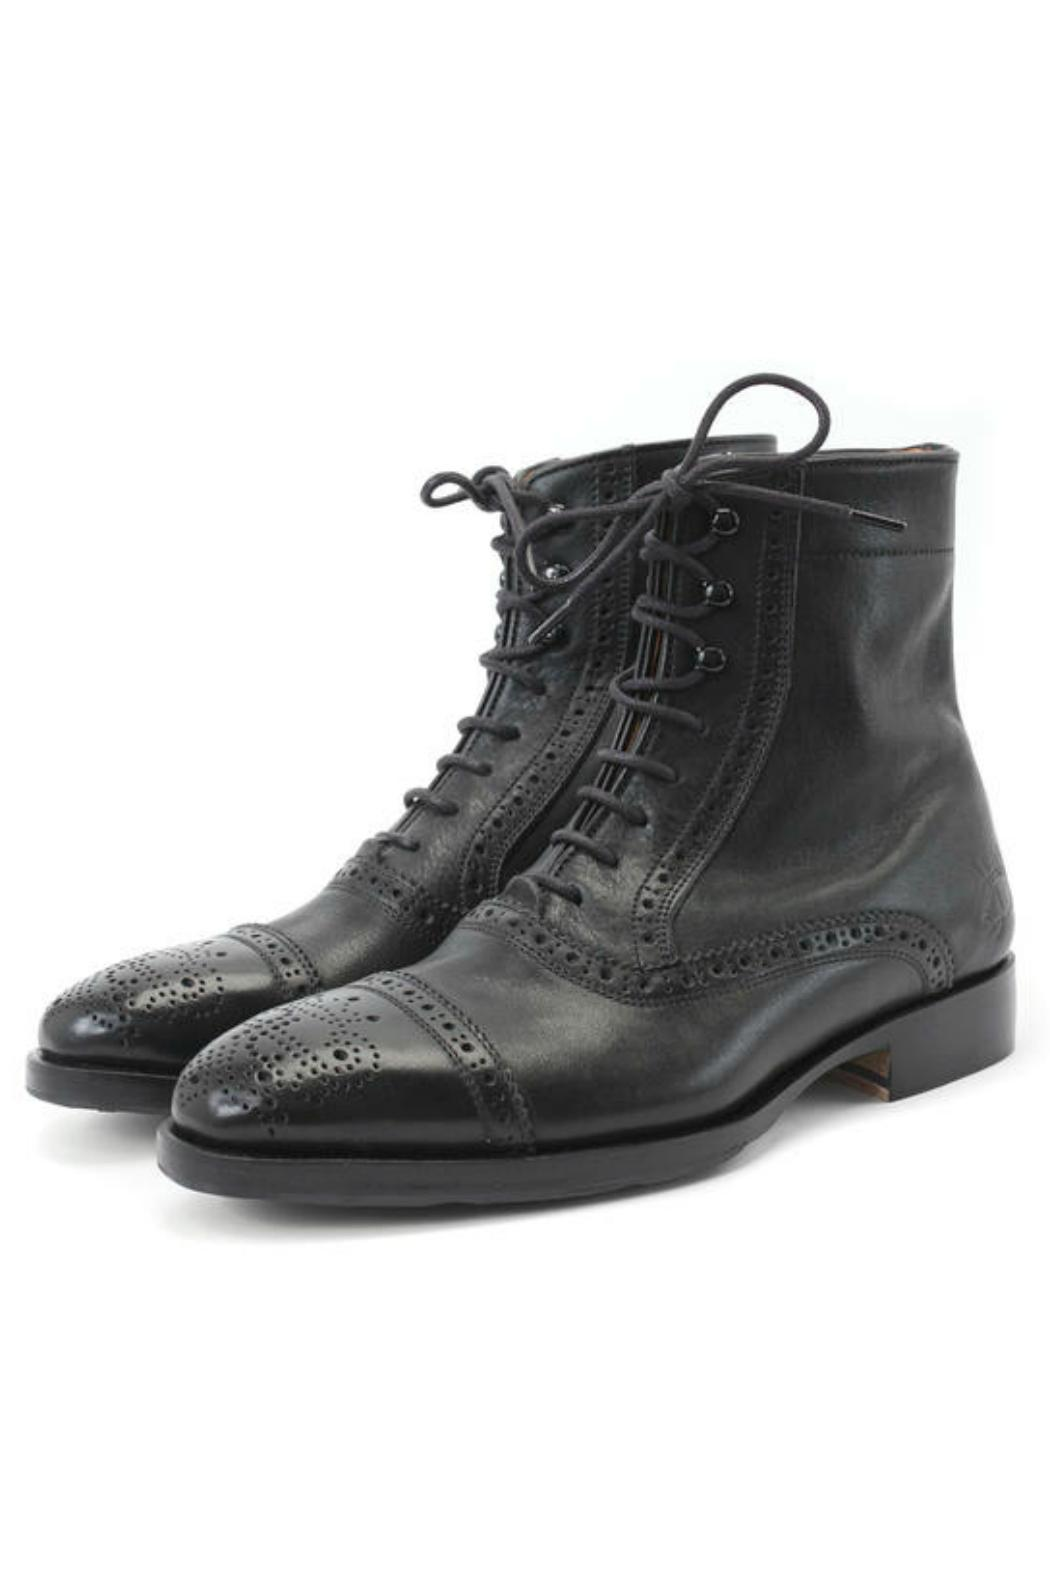 14 verified Cole Haan coupons and promo codes as of Dec 2. Popular now: Up to 50% Off Sale Items. Trust downafileat.ga for Shoes savings.